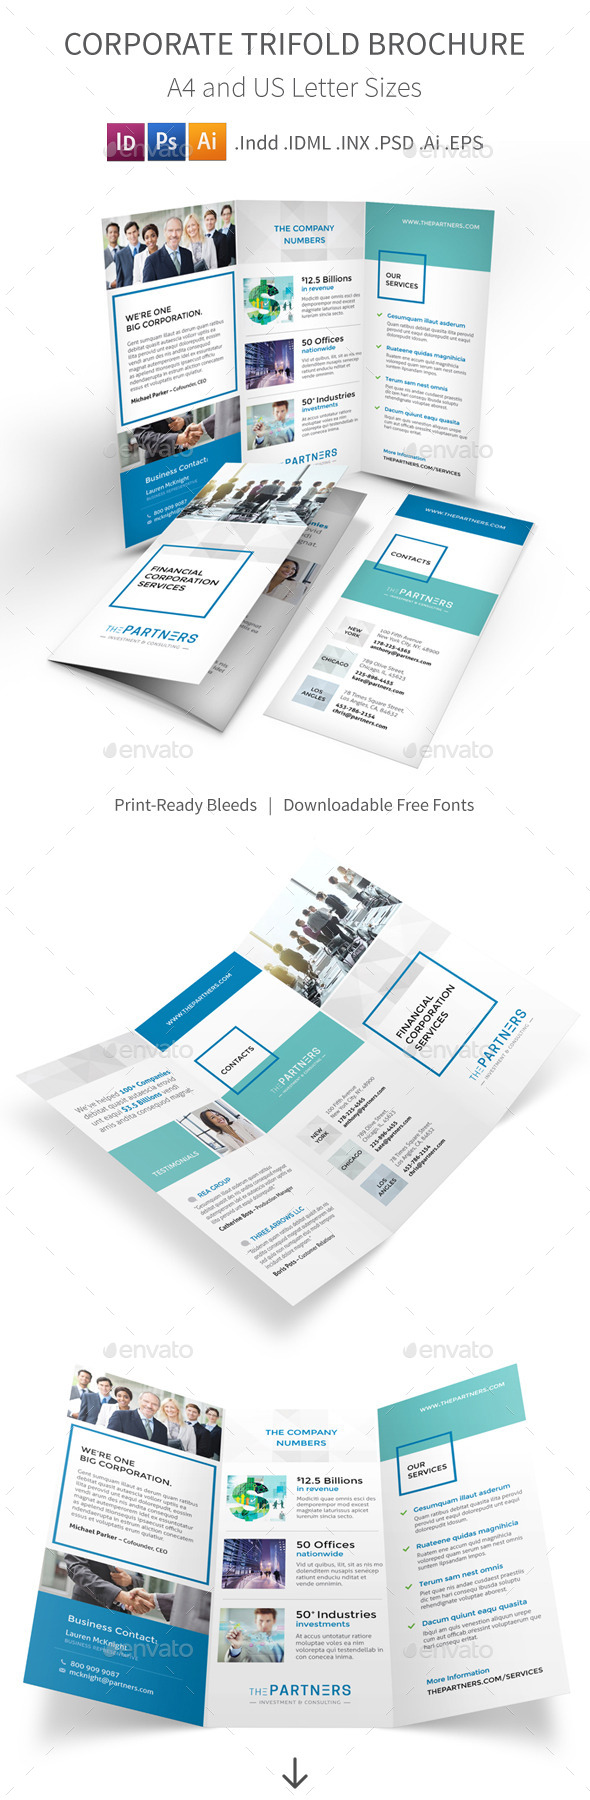 GraphicRiver Corporate Trifold Brochure 11406670